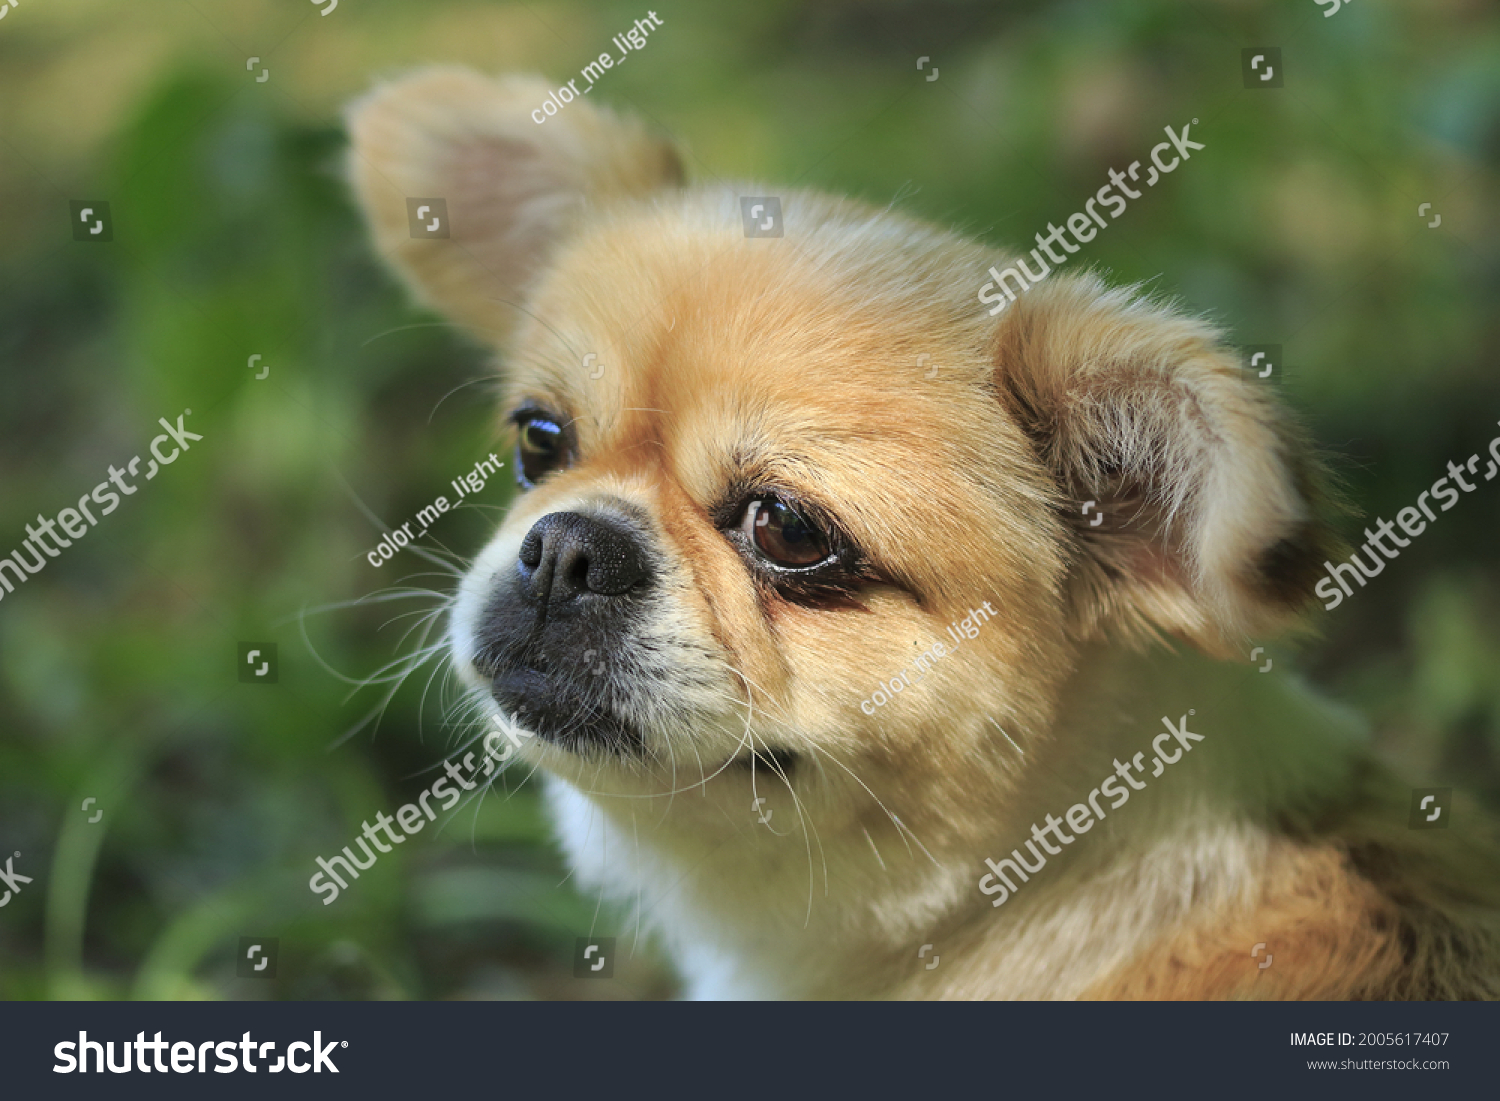 stock-photo-close-up-of-a-chihuahua-face